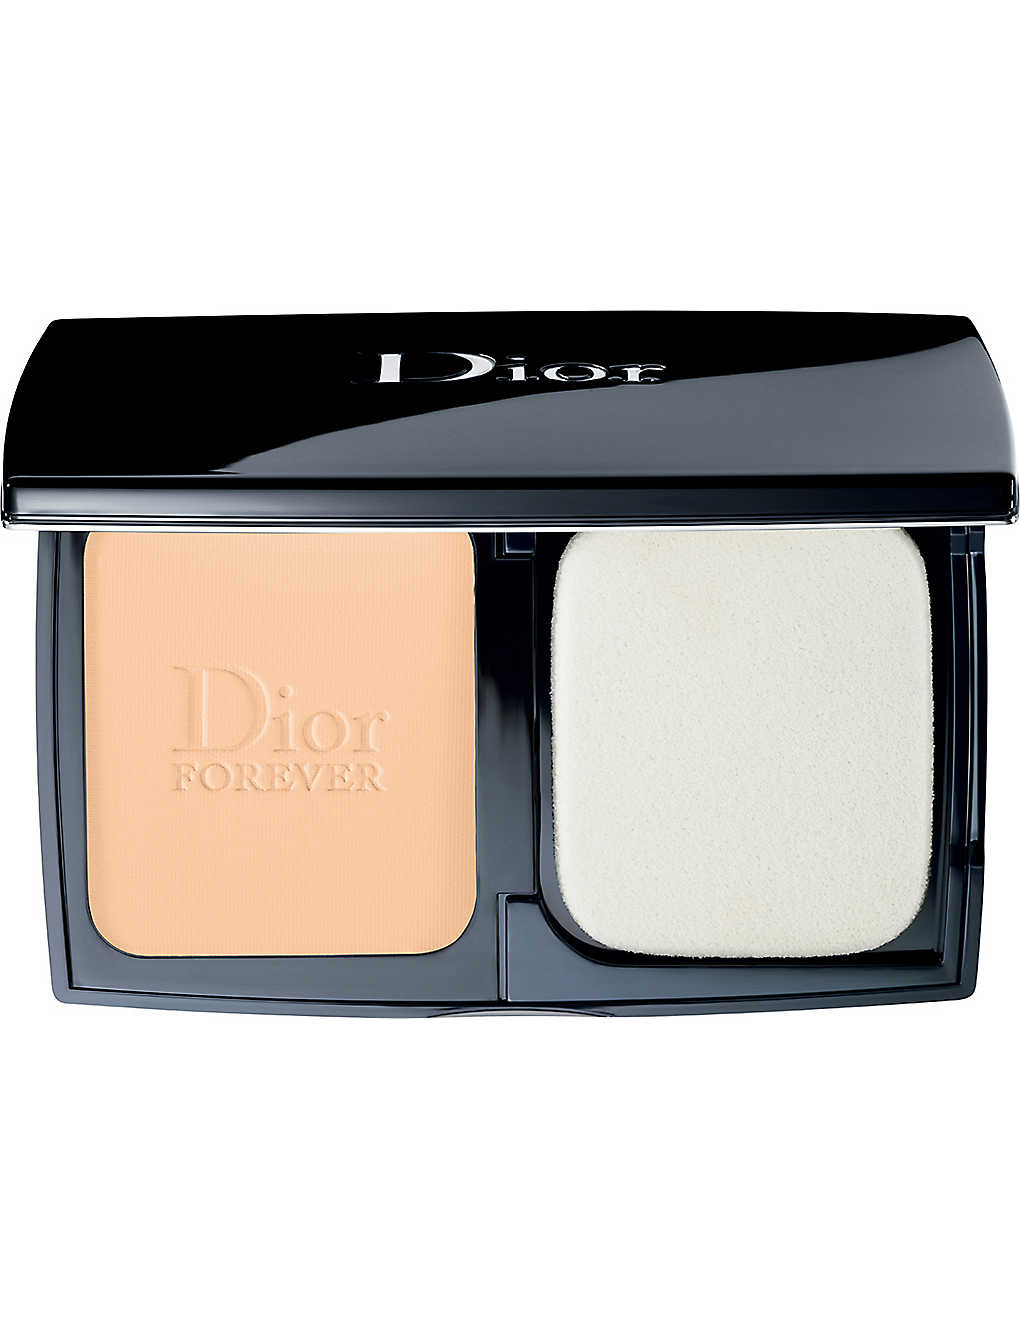 DIOR: Diorskin Forever Extreme Control